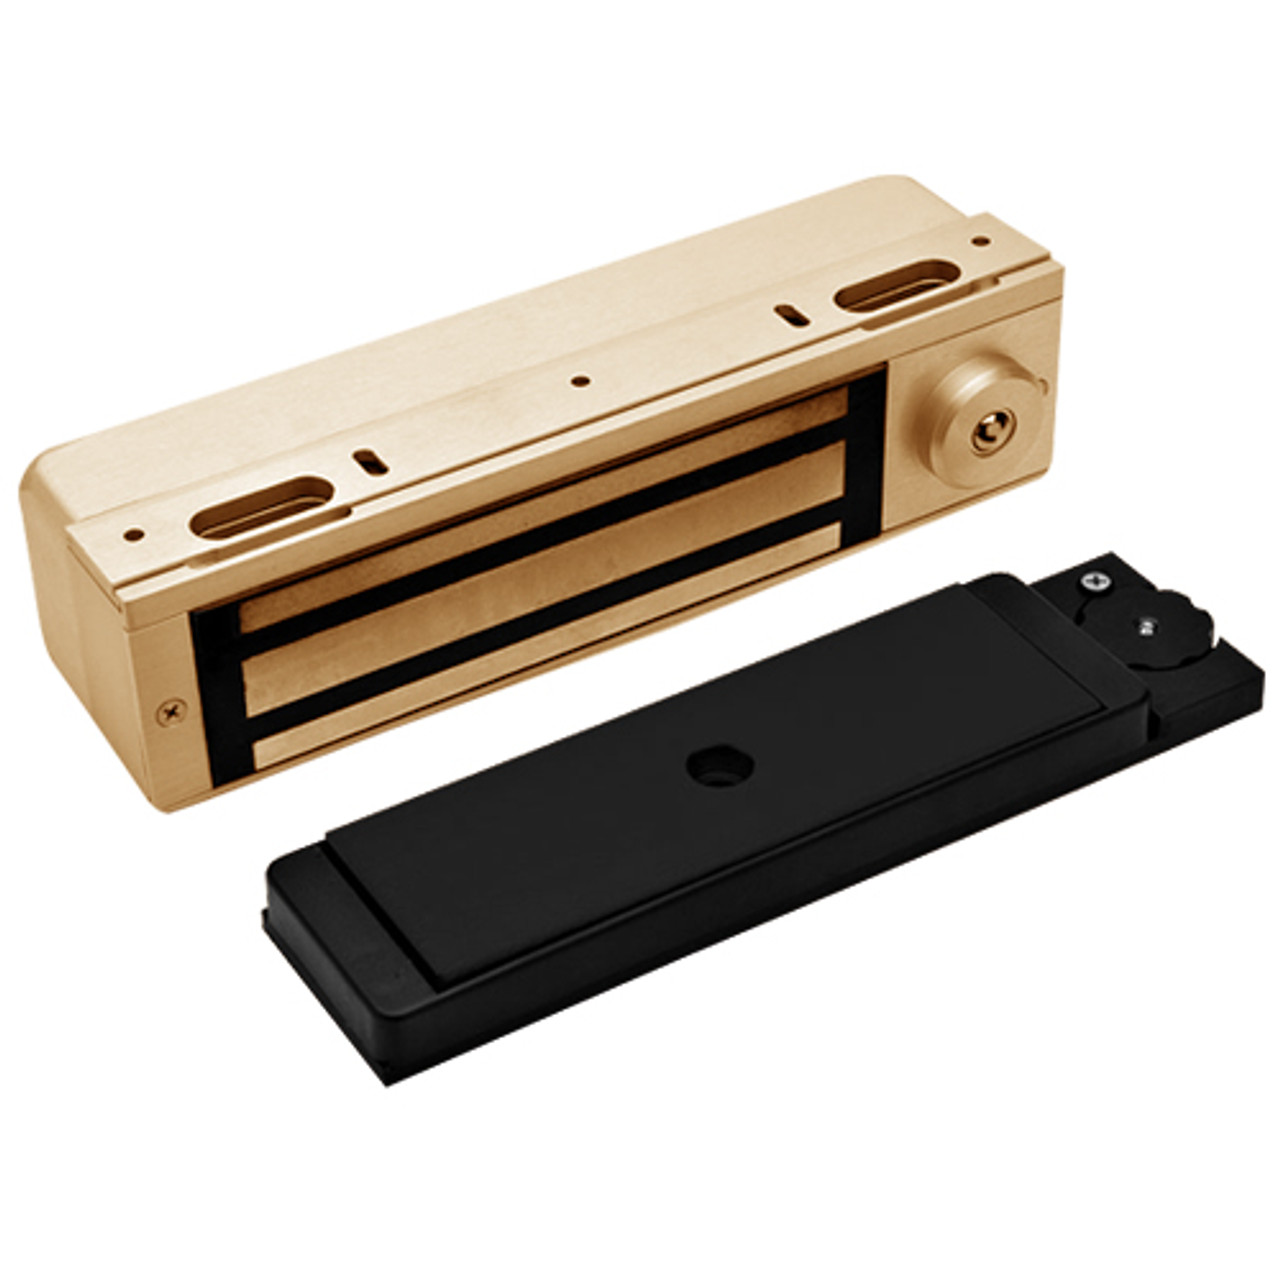 3101C-ATS-US10 DynaLock 3101C Series Delay Egress Electromagnetic Lock for Single Outswing Door with ATS in Satin Bronze